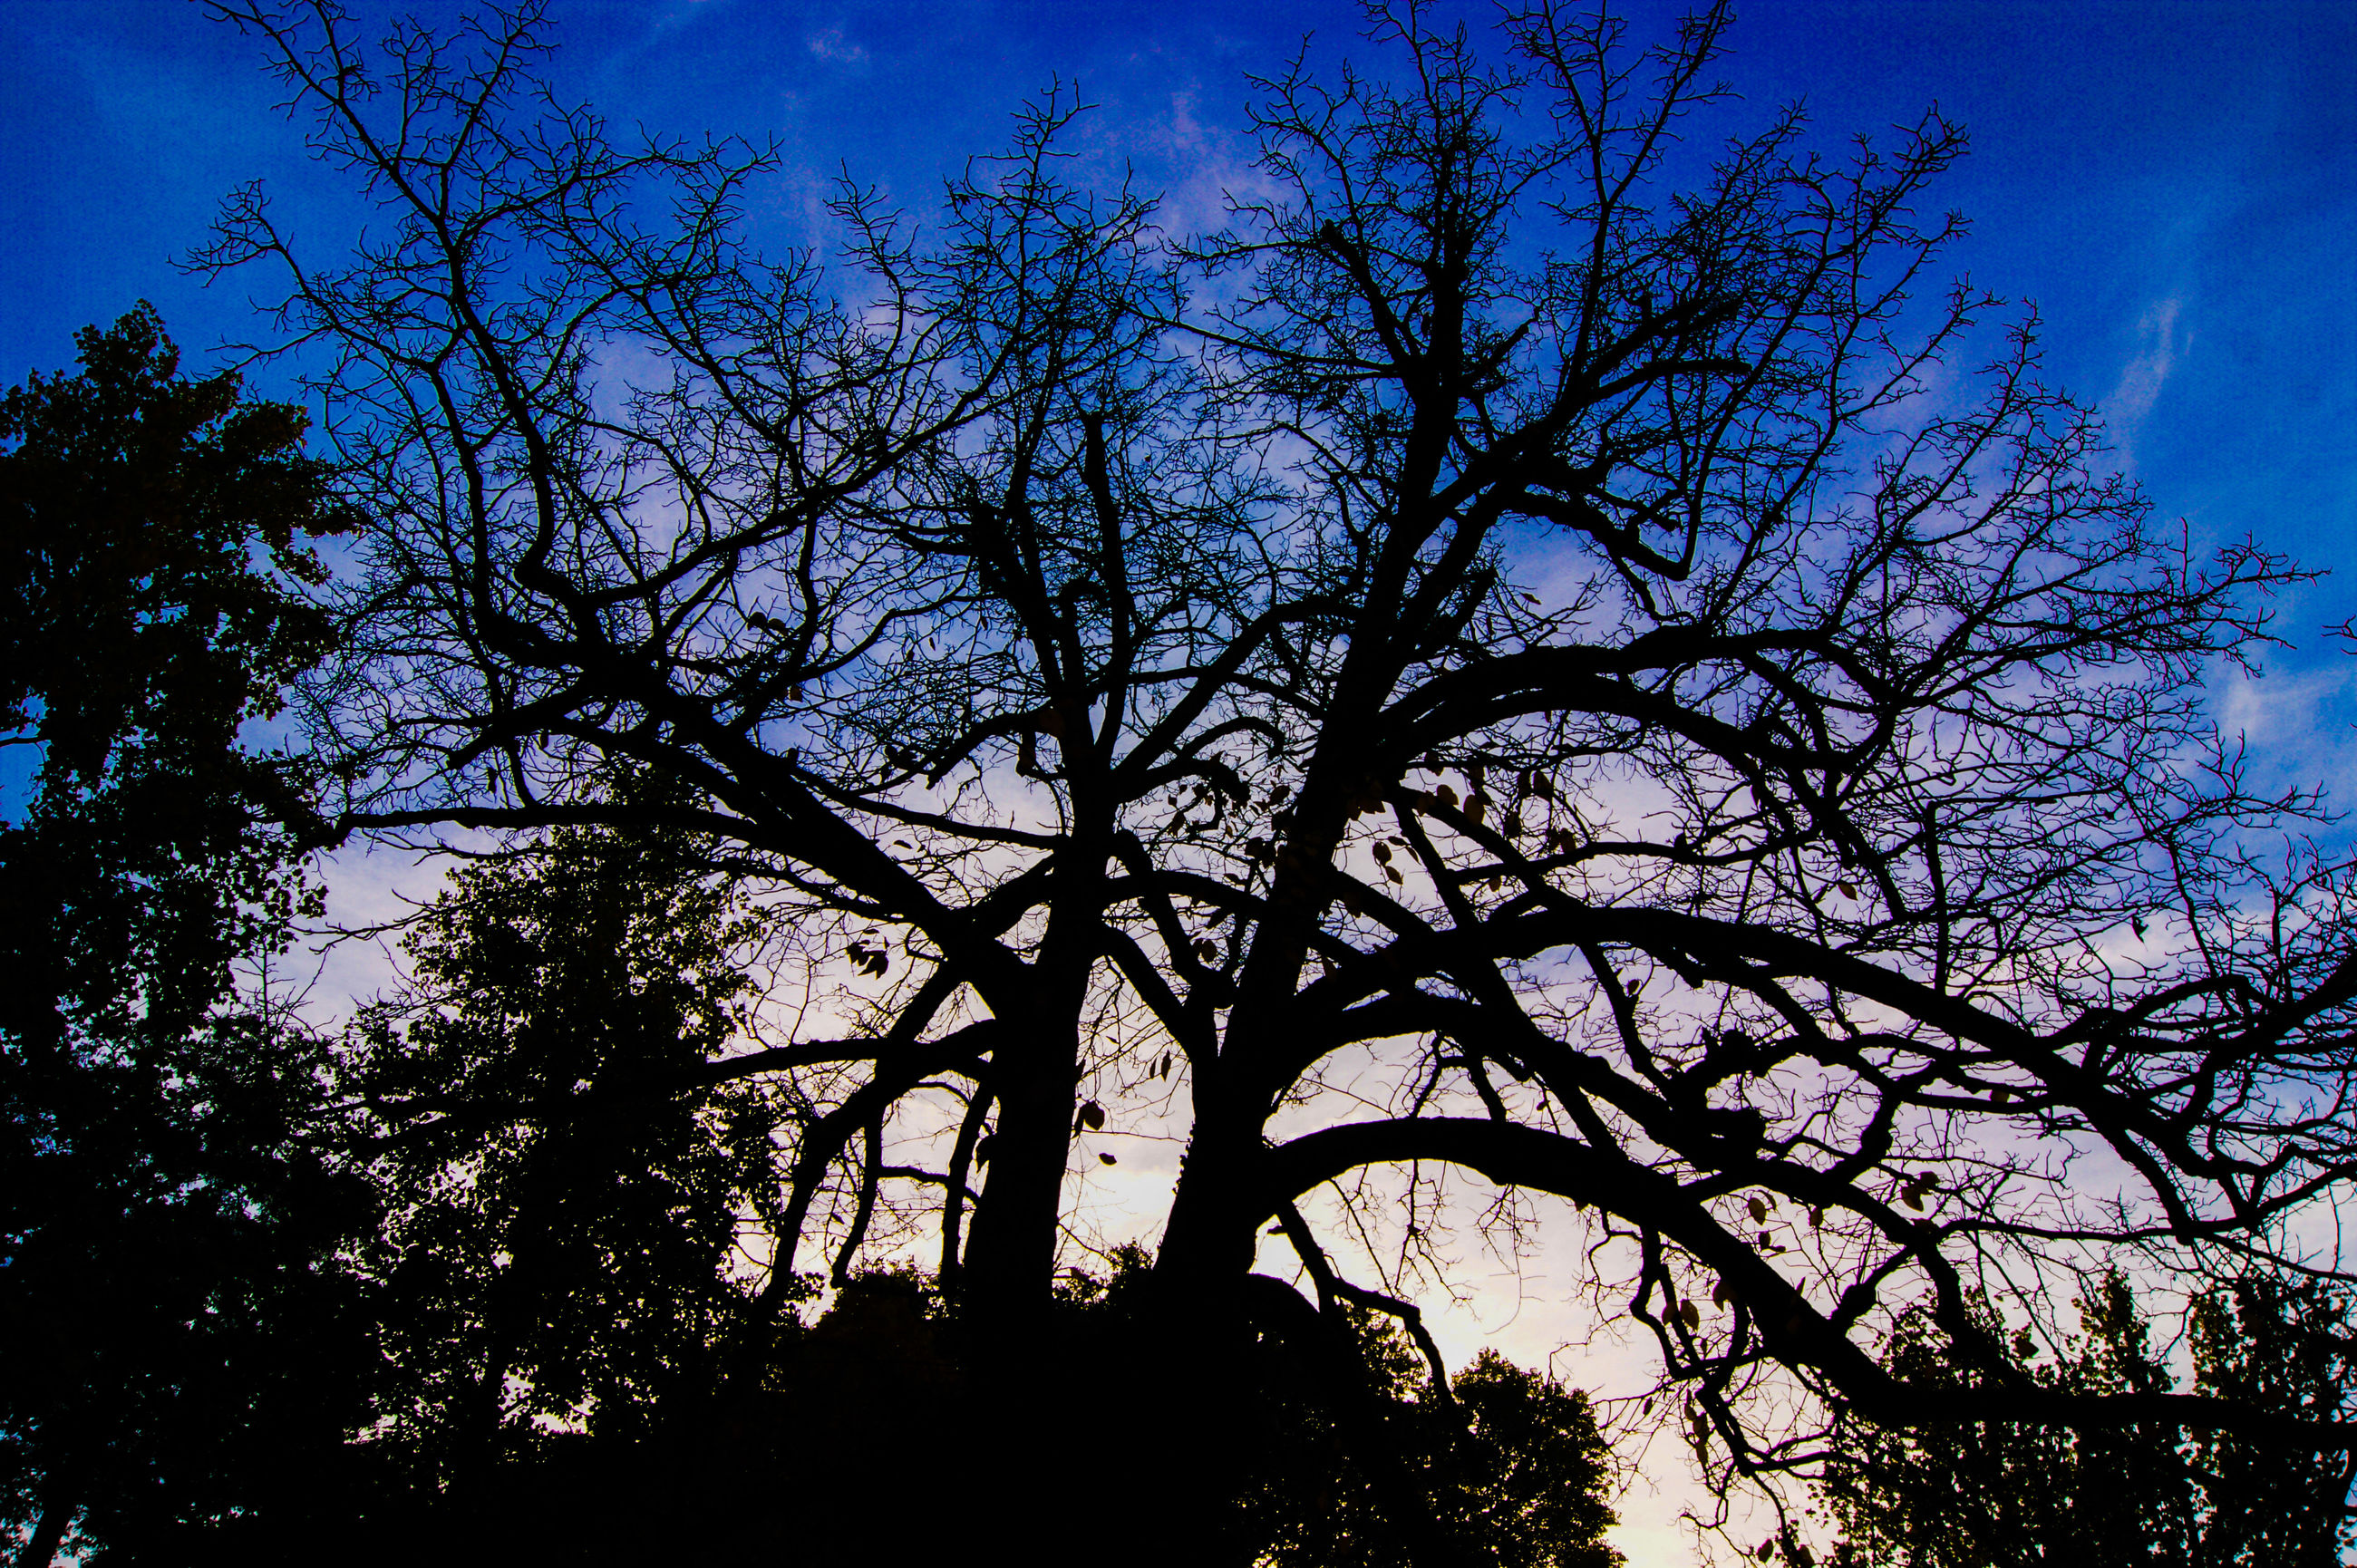 tree, low angle view, silhouette, branch, blue, sky, bare tree, tranquility, nature, growth, beauty in nature, scenics, tranquil scene, outdoors, sunlight, clear sky, no people, dusk, day, tree trunk